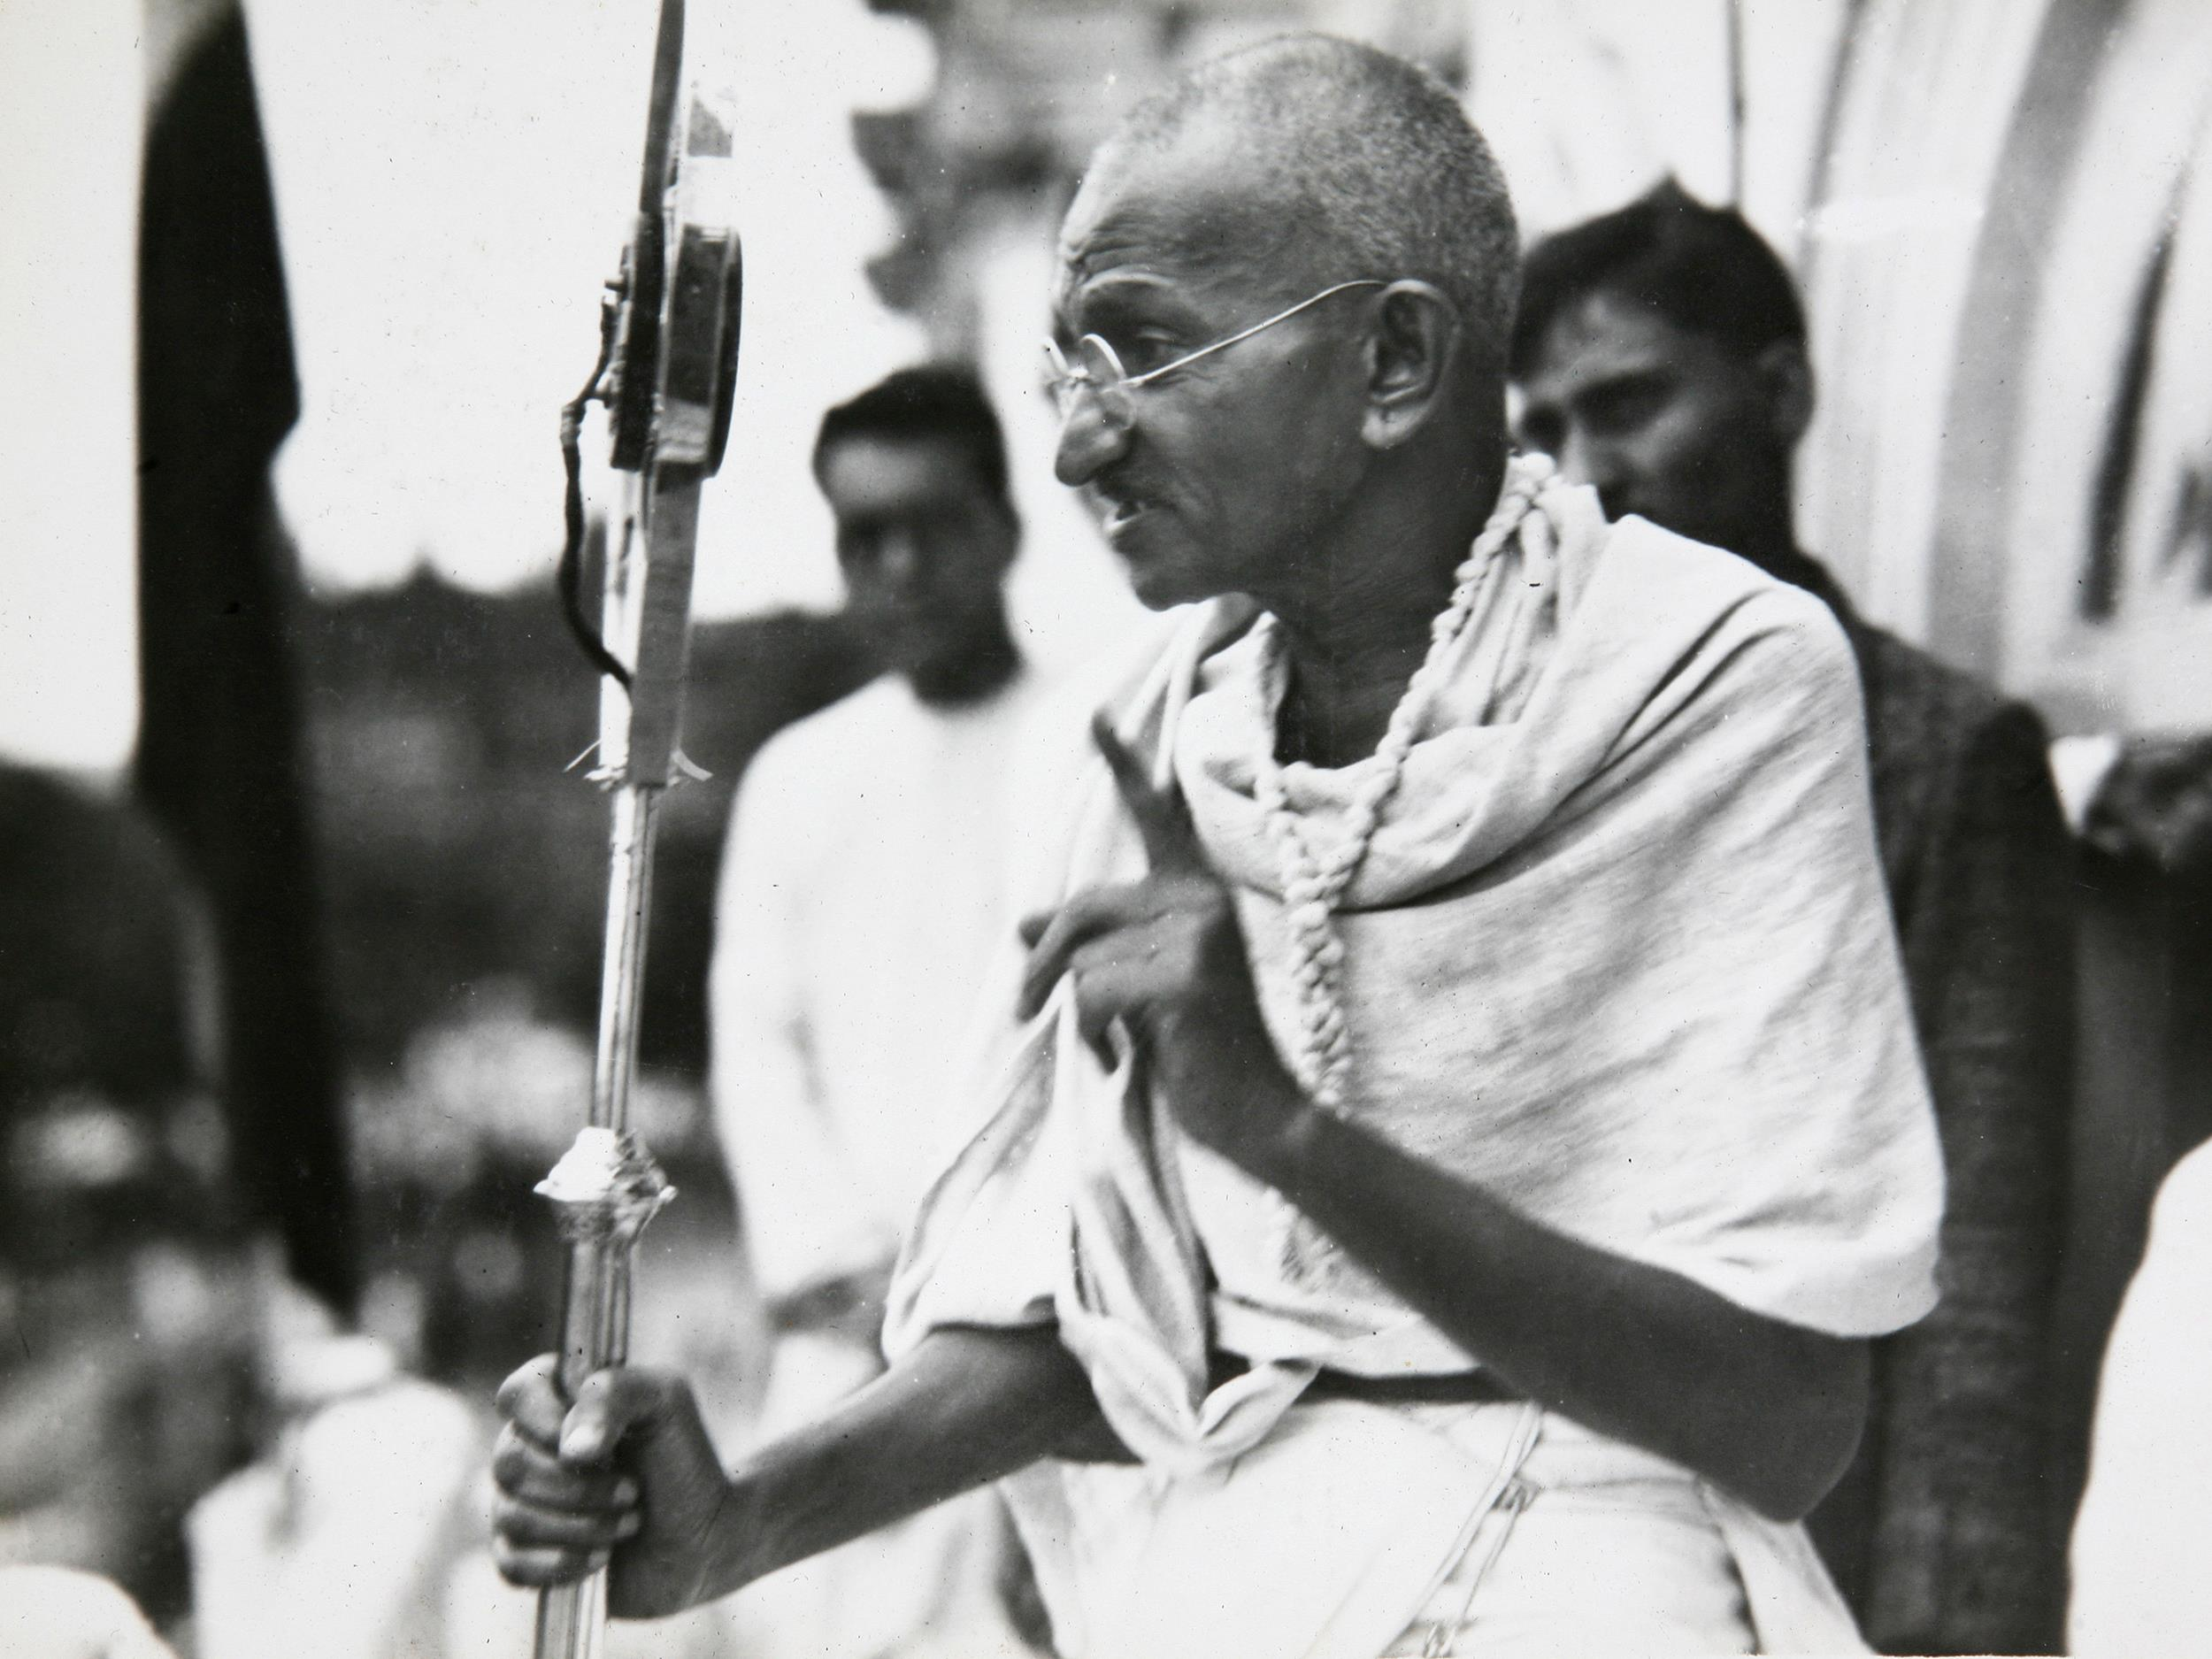 an introduction to the life of mohandas gandhi Online writings - books, compilations, articles - on and by mahatma gandhi.